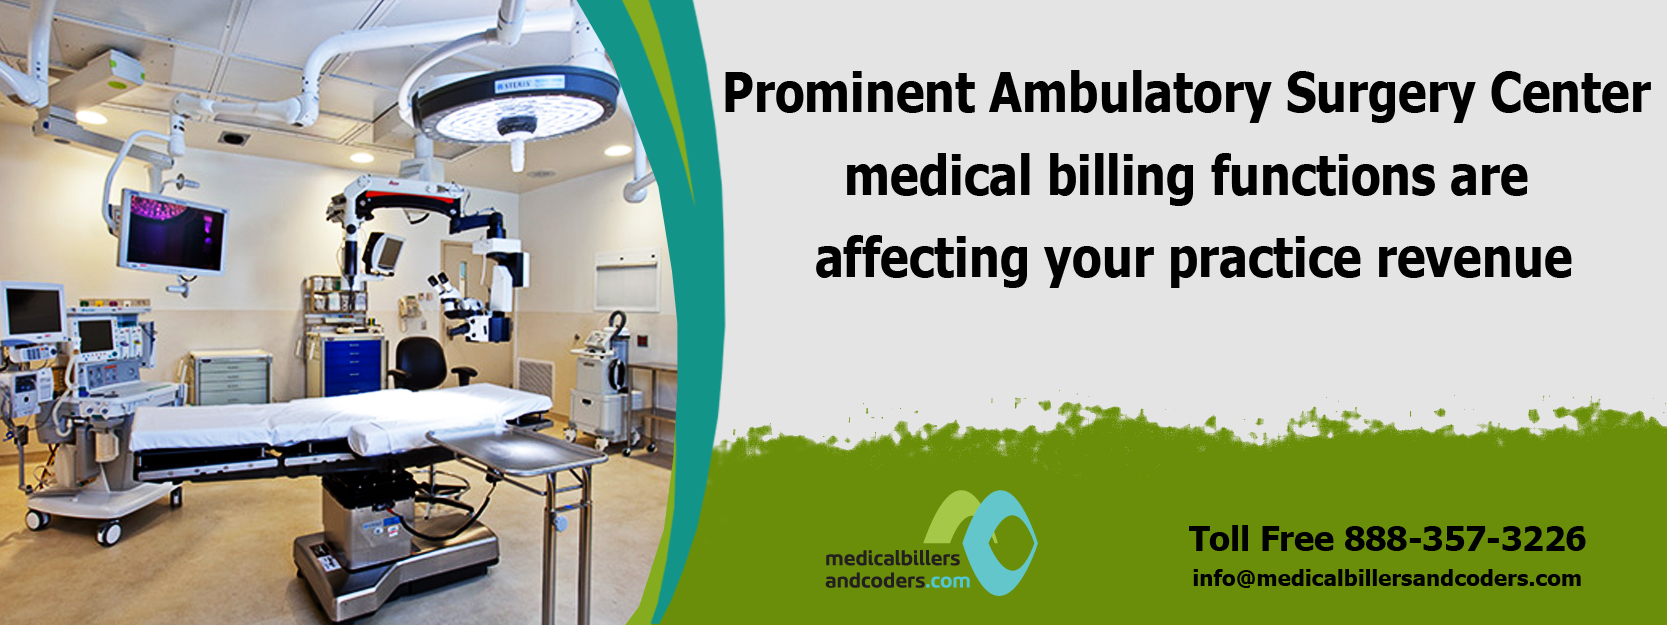 Prominent Ambulatory Surgery Center medical billing functions are affecting your practice revenue